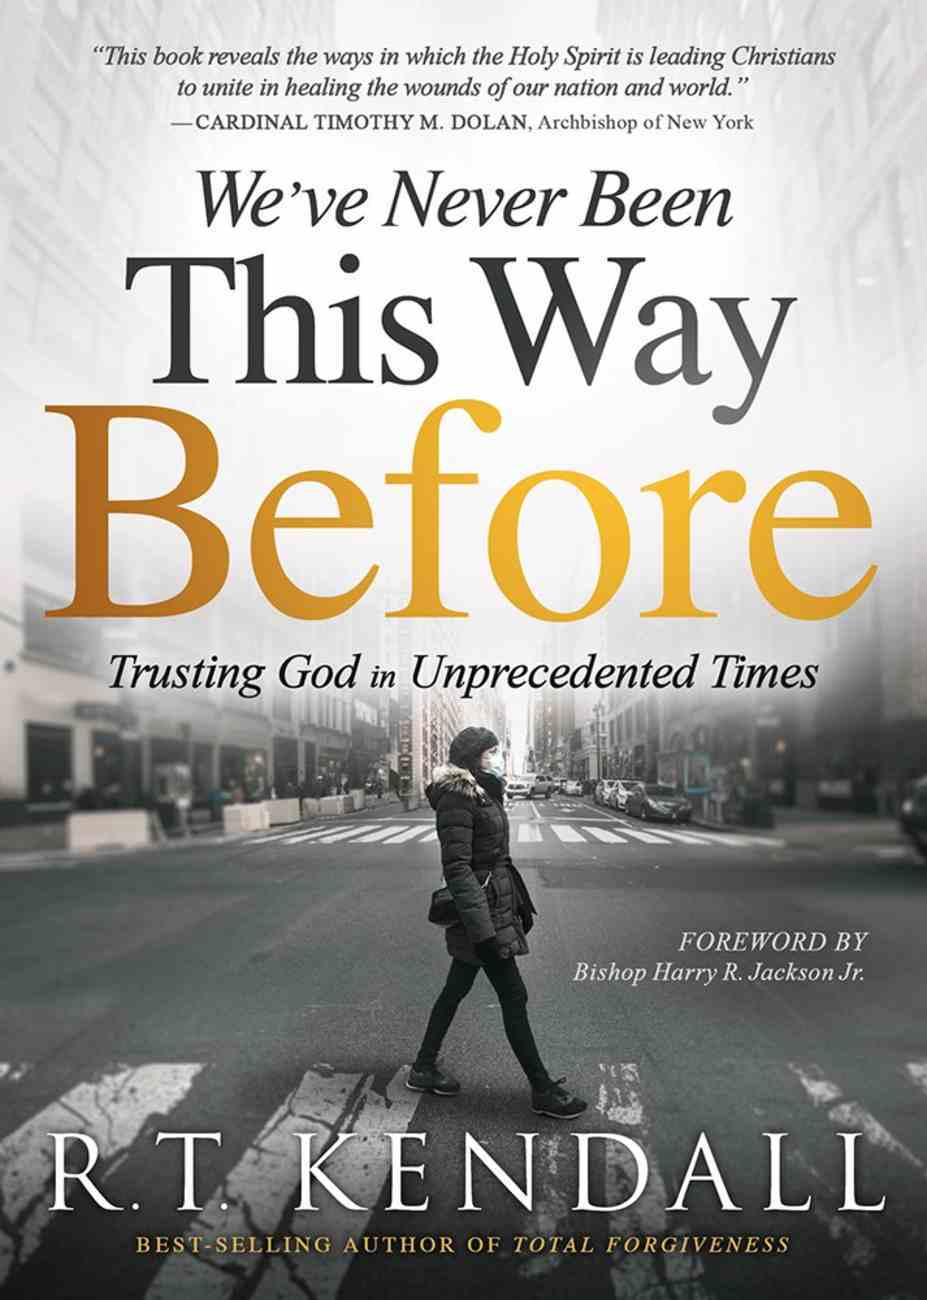 We've Never Been This Way Before: Trusting God in Unprecedented Times Paperback